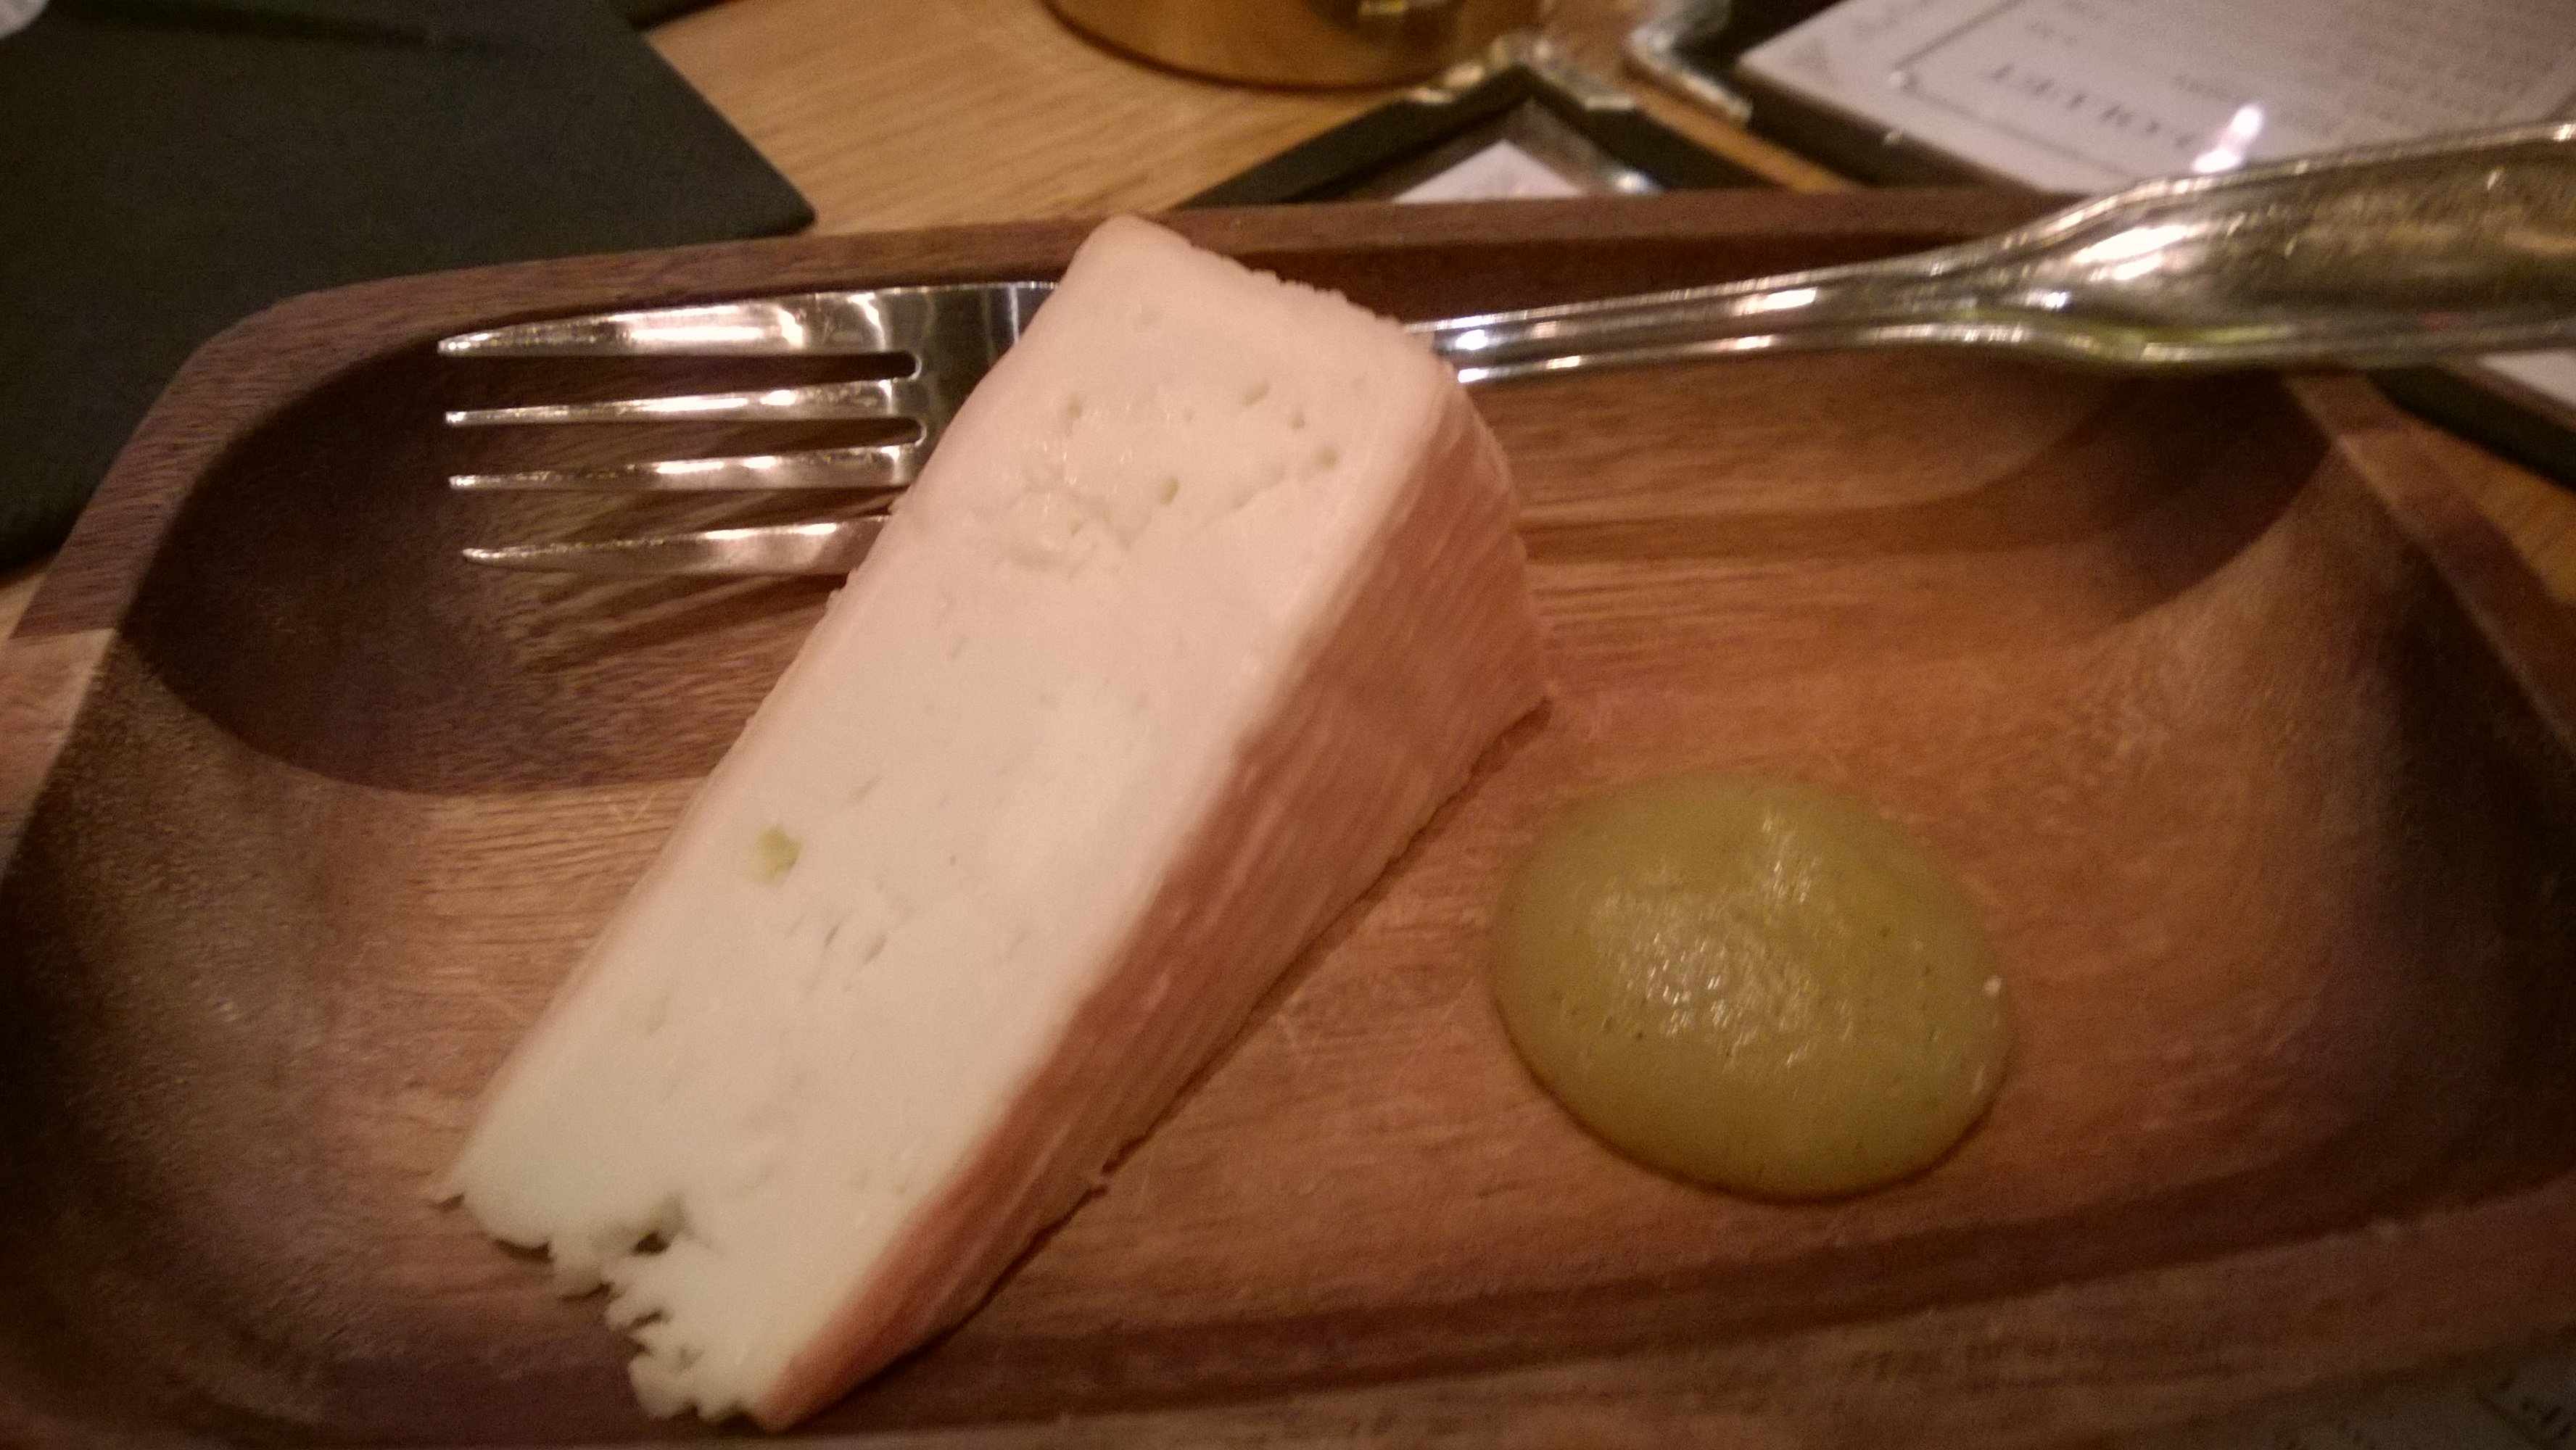 August von Trappe, Tampere: Fromage